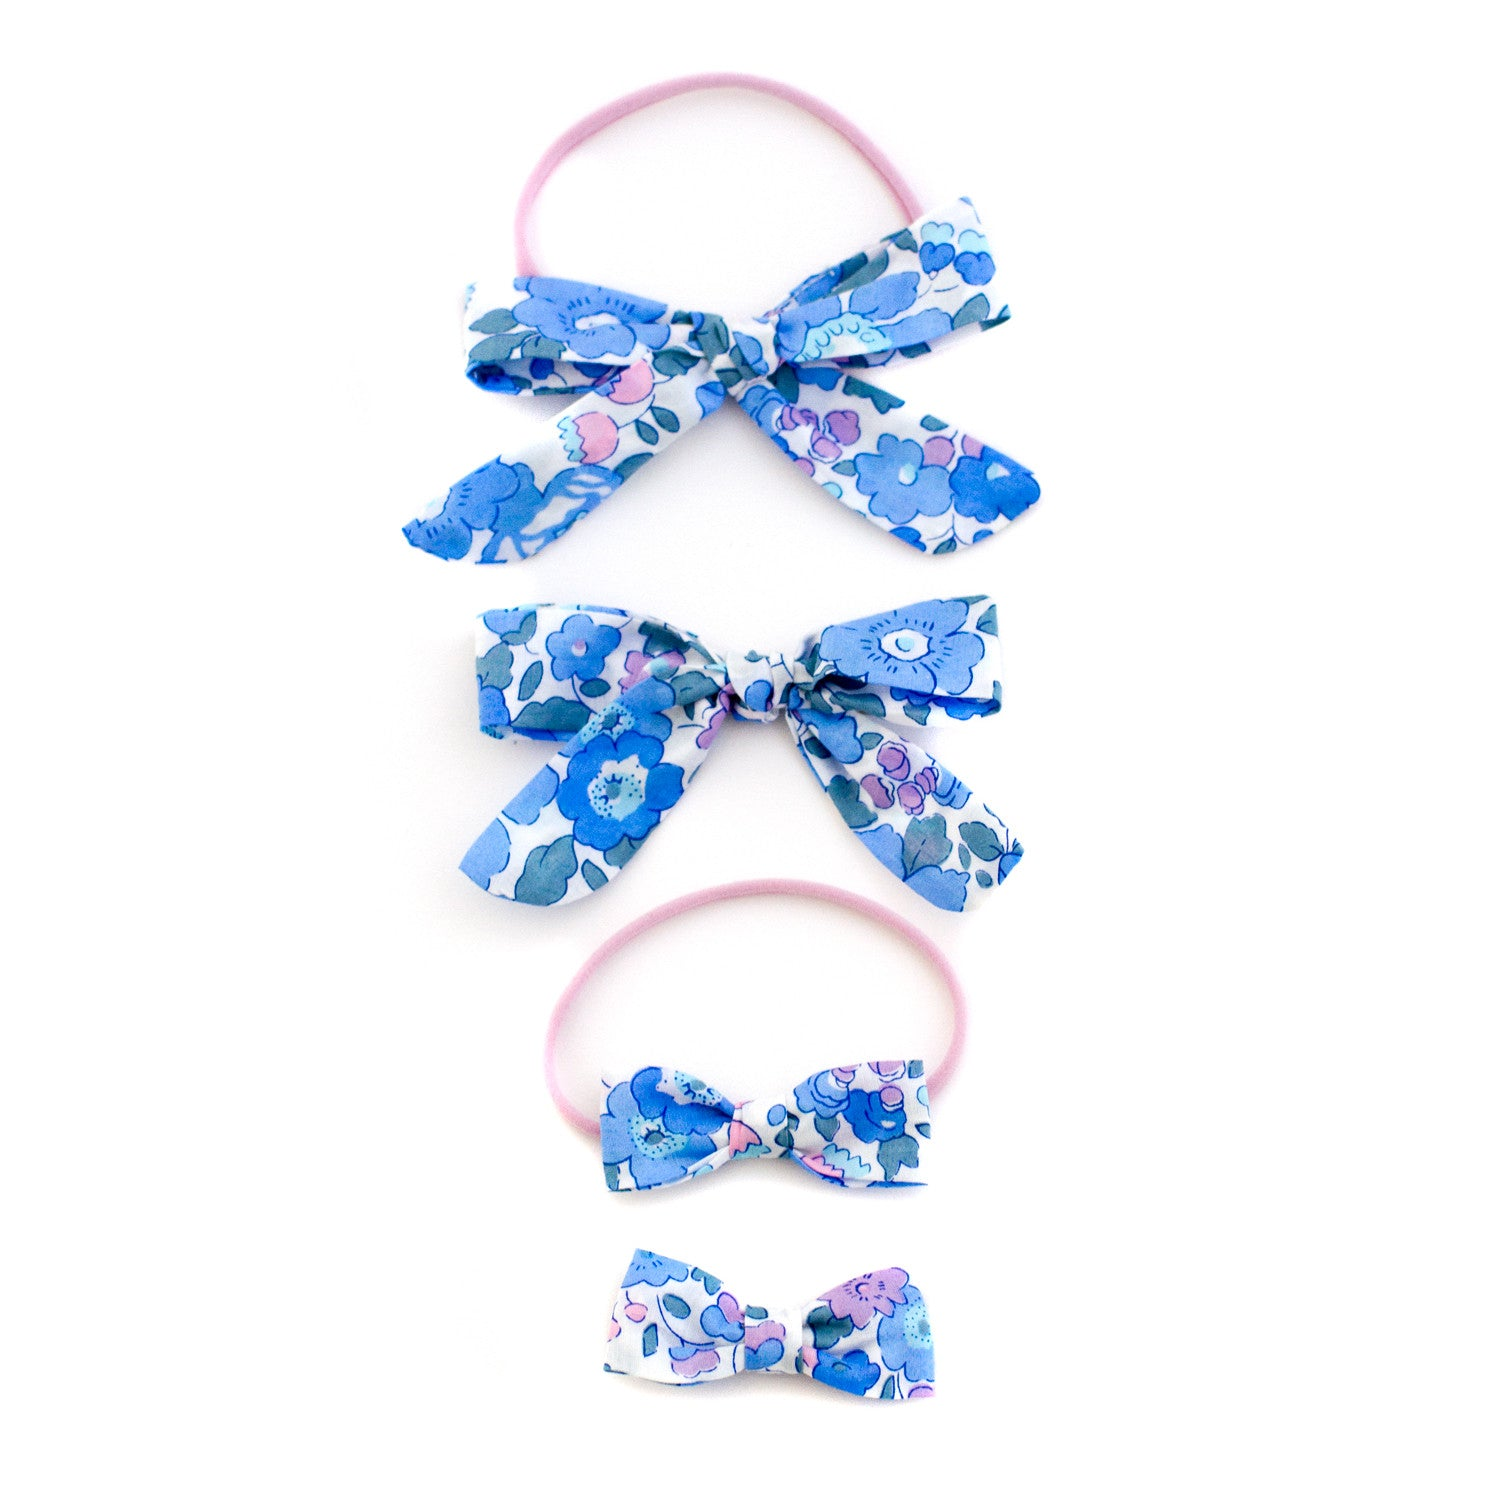 Pinwheel Bow Vintage Toddler Bows Liberty of London Newborn Bows Hand-tied Fabric Baby Bow Floral Baby Headband Alligator Clips